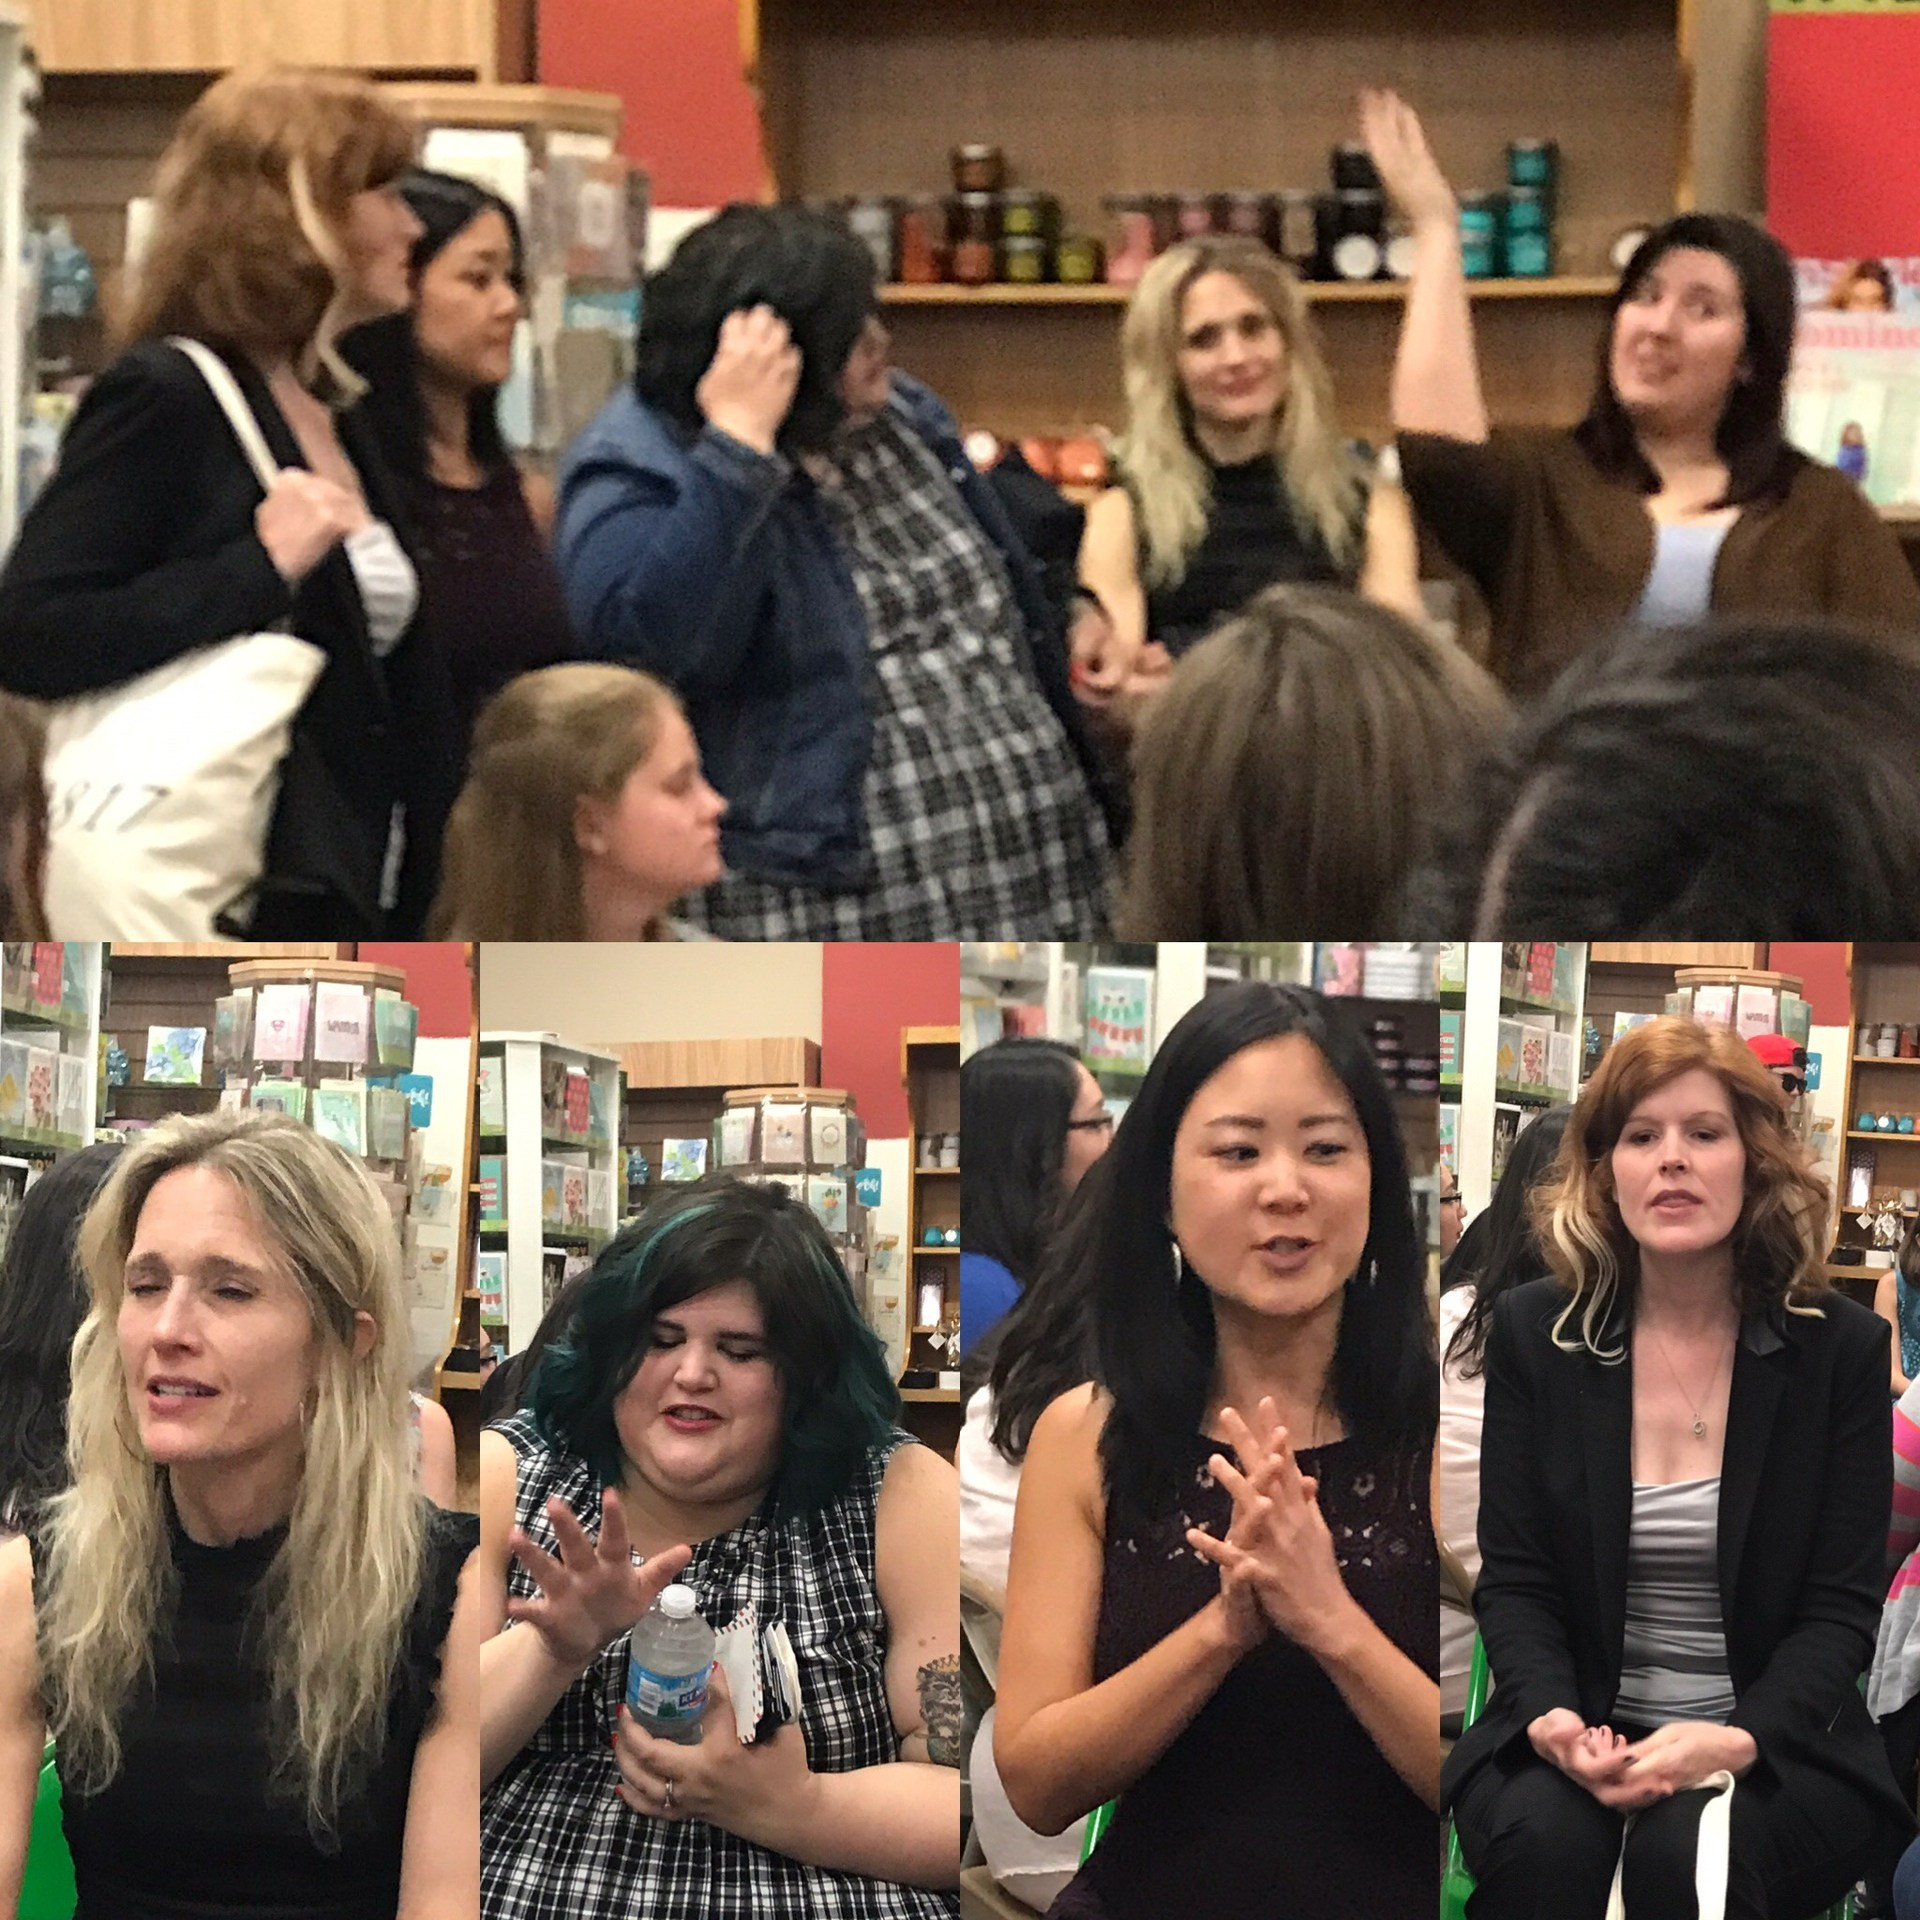 Chicago author visit with Joelle Charbonneau and others